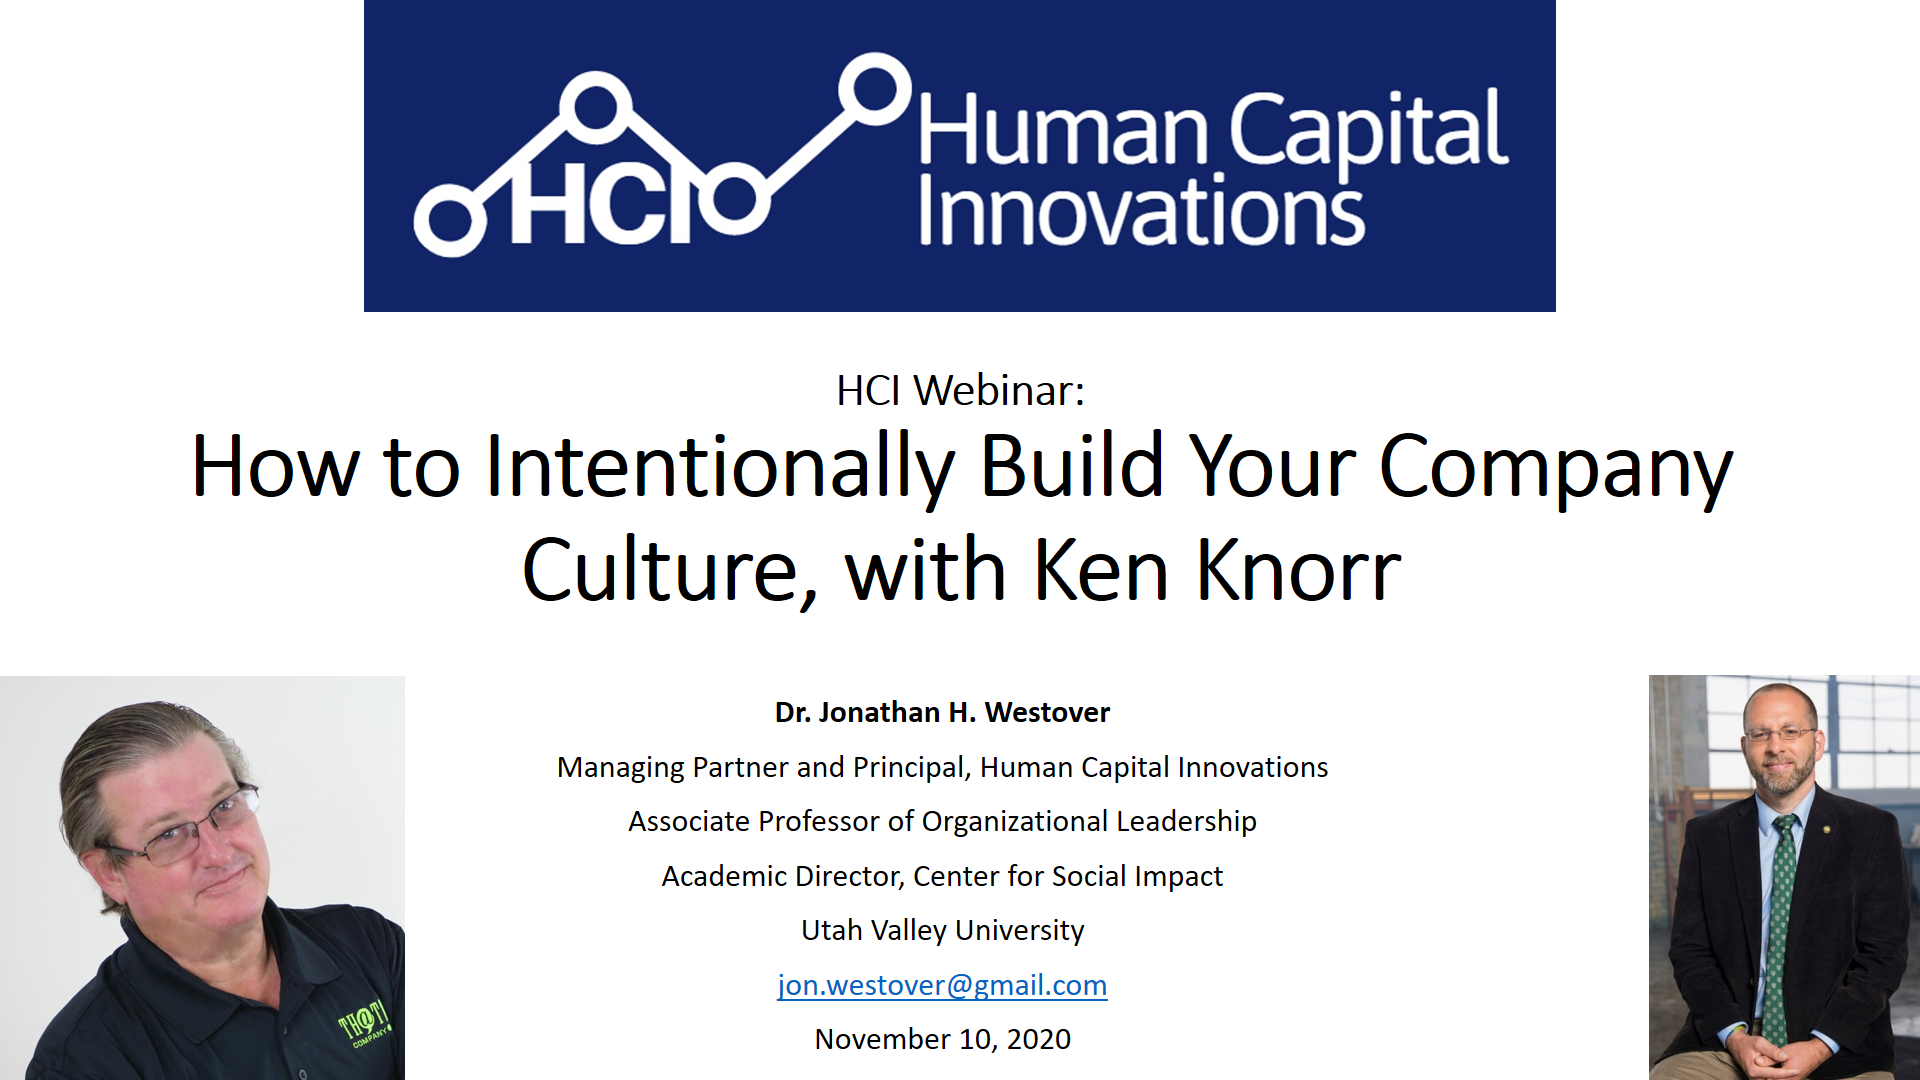 How to Intentionally Build Your Company Culture